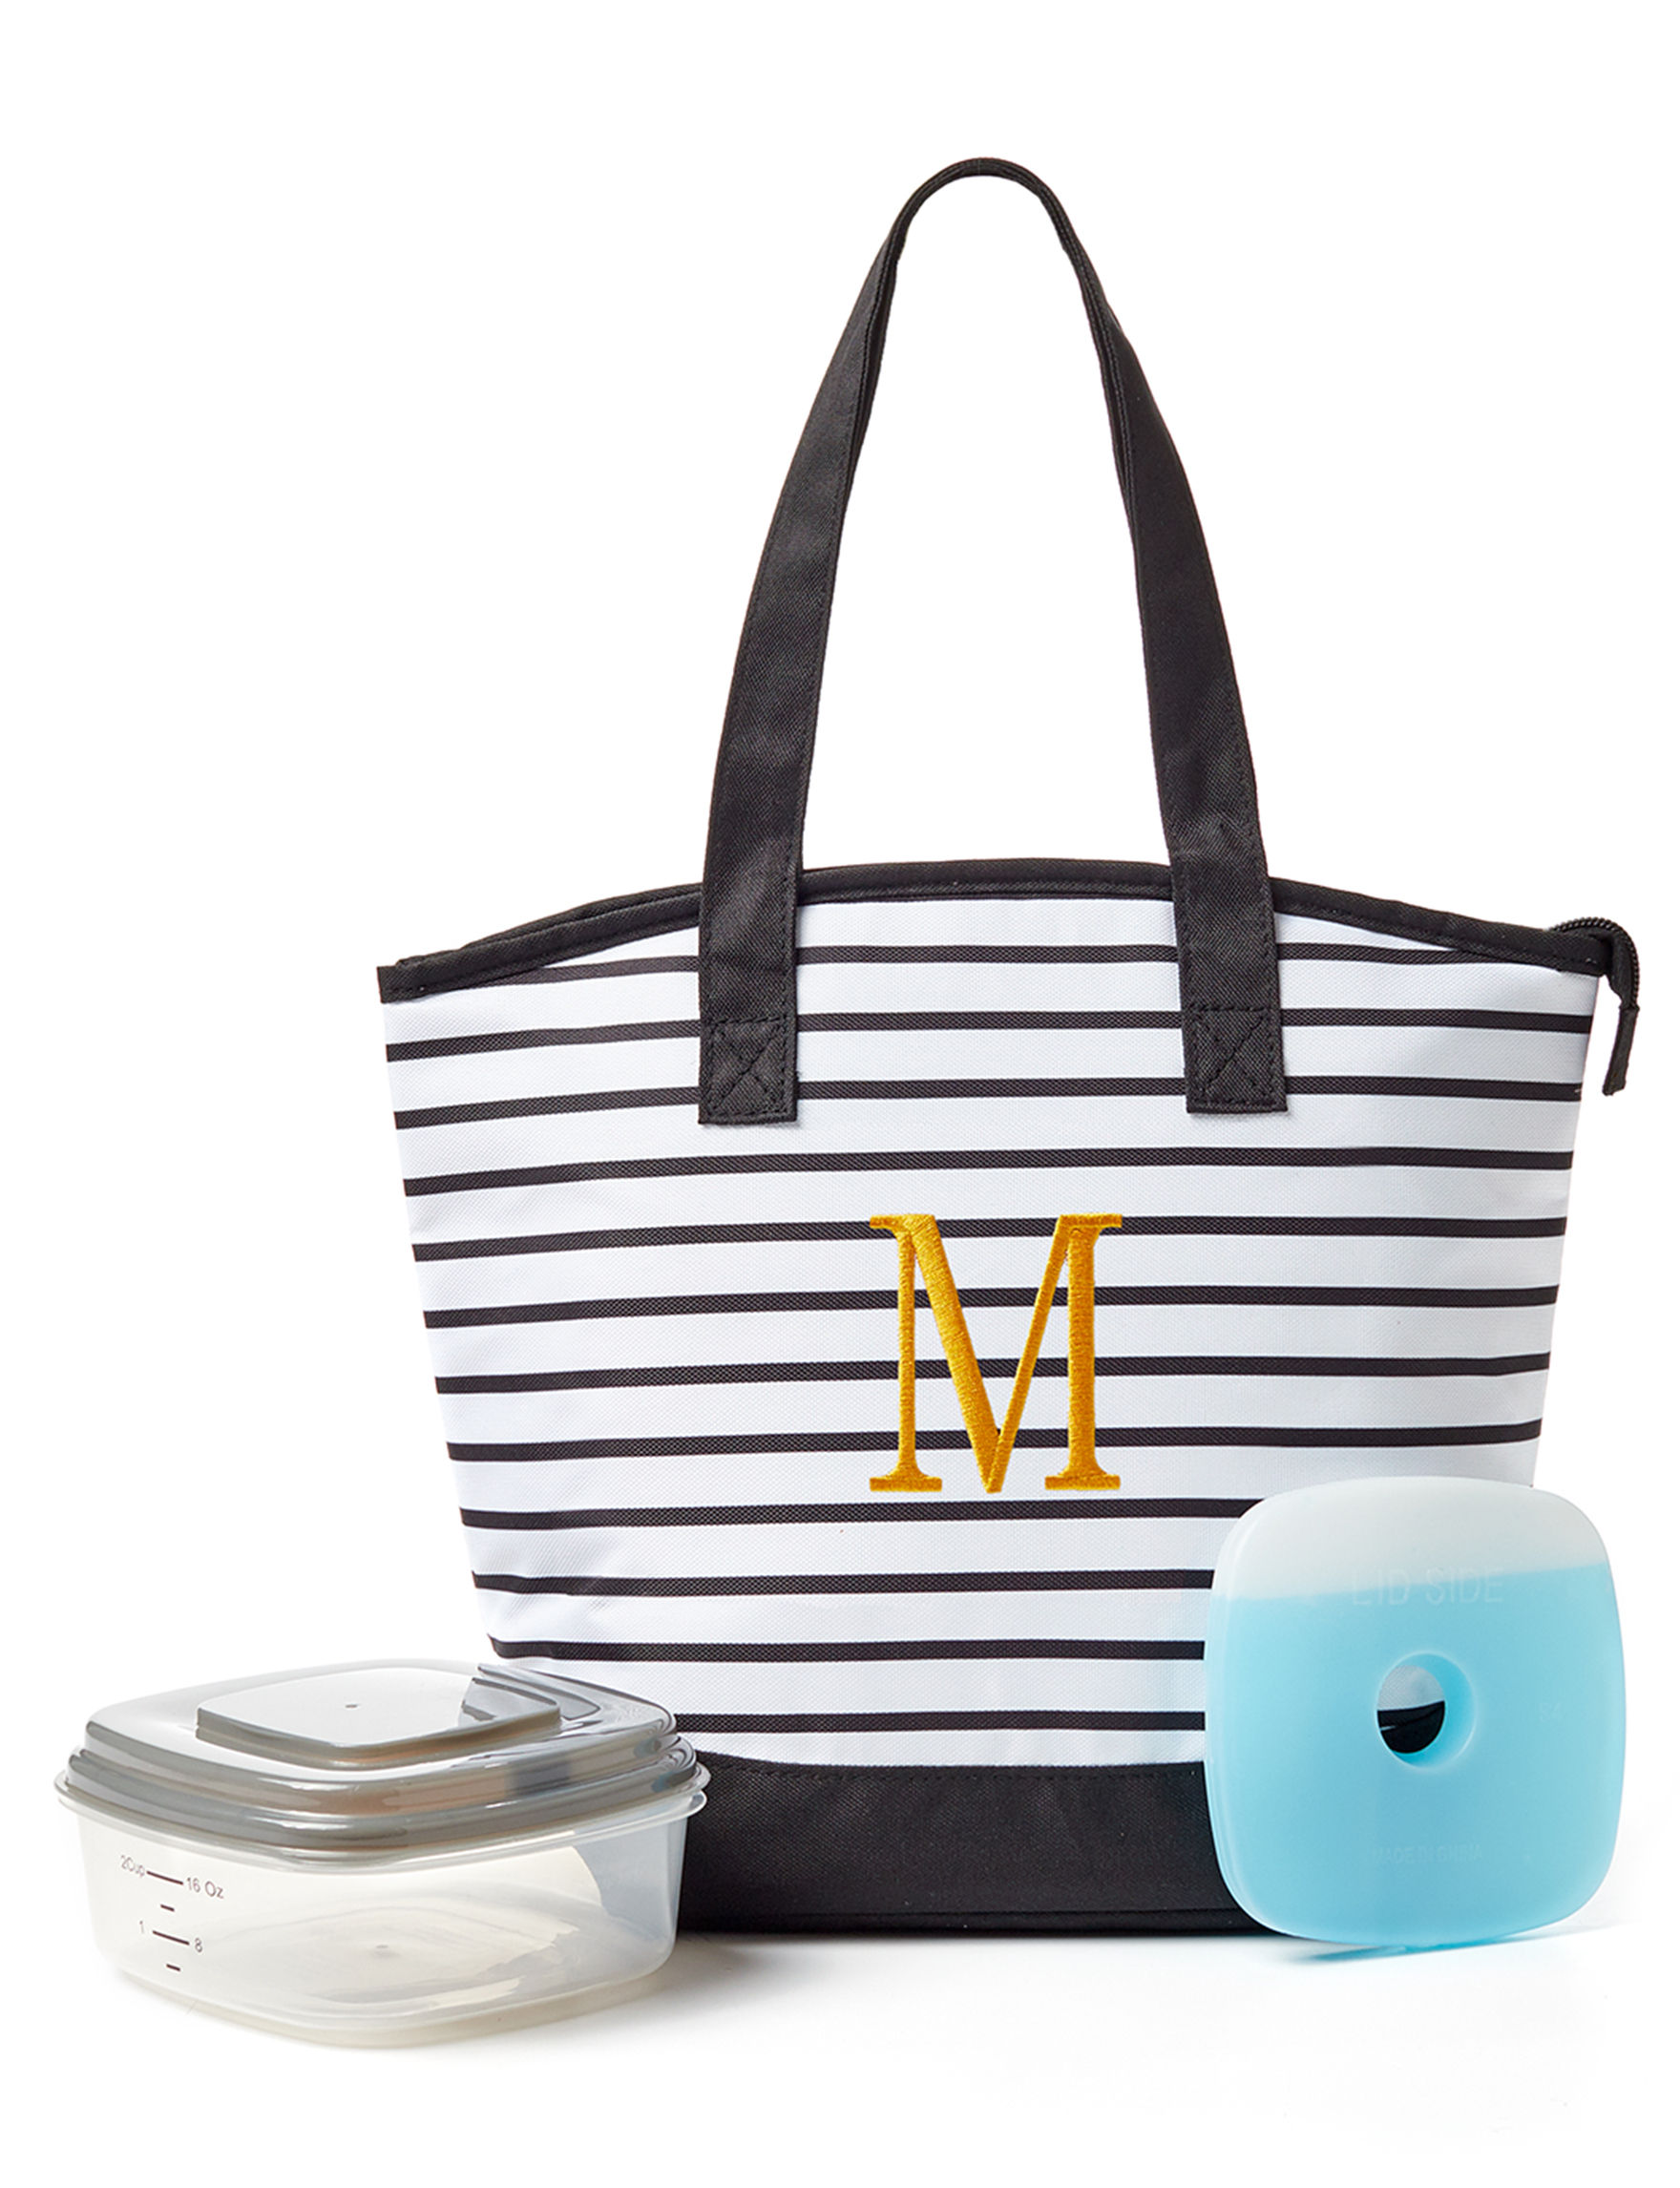 Fit & Fresh White / Black Lunch Boxes & Bags Monogram Kitchen Storage & Organization